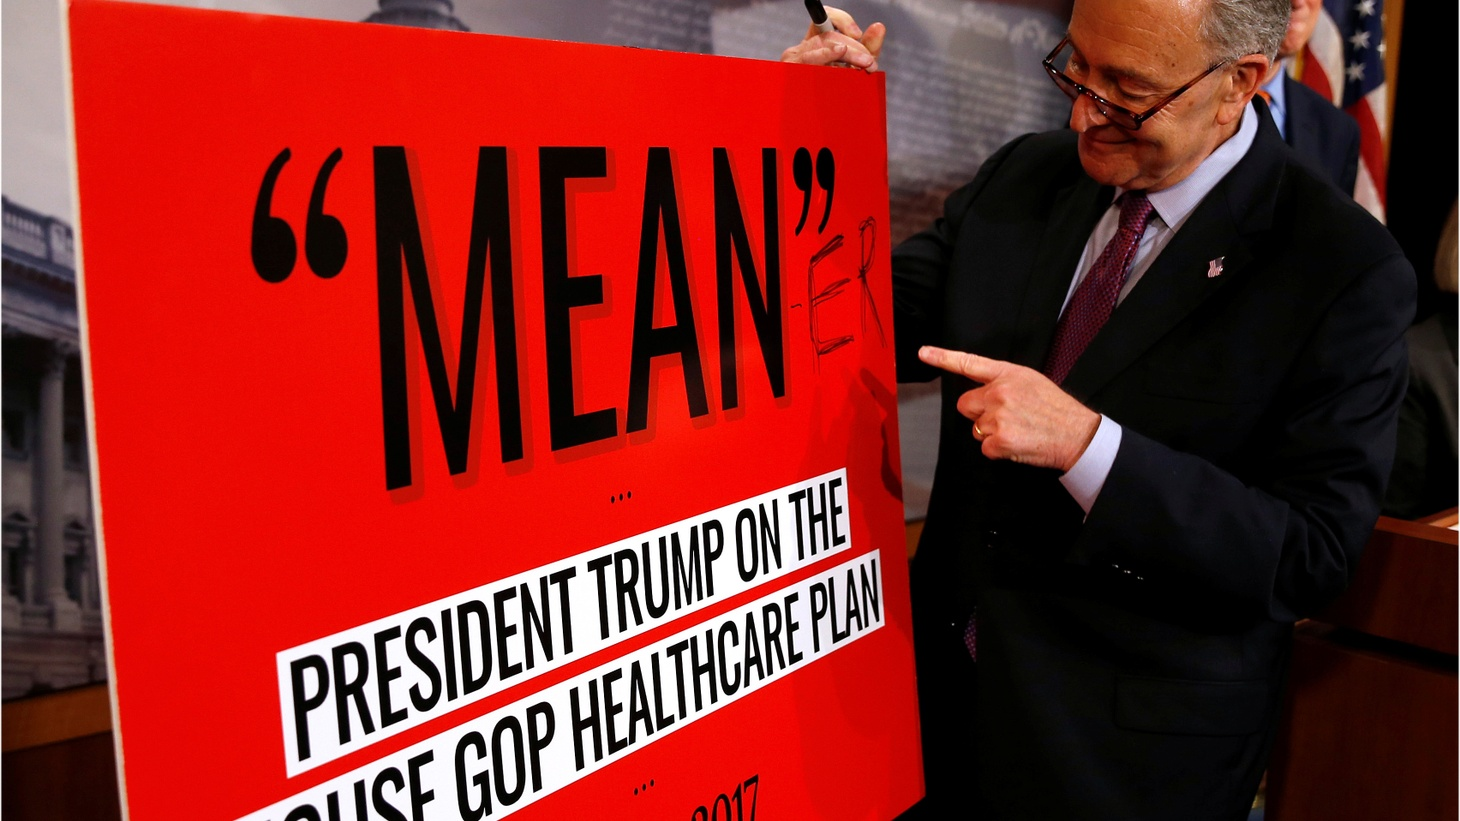 The Senate GOP health care bill is the latest effort to dismantle Obamacare. Four conservative senators say they can't support it, but are they just playing politics? What will the moderates do?